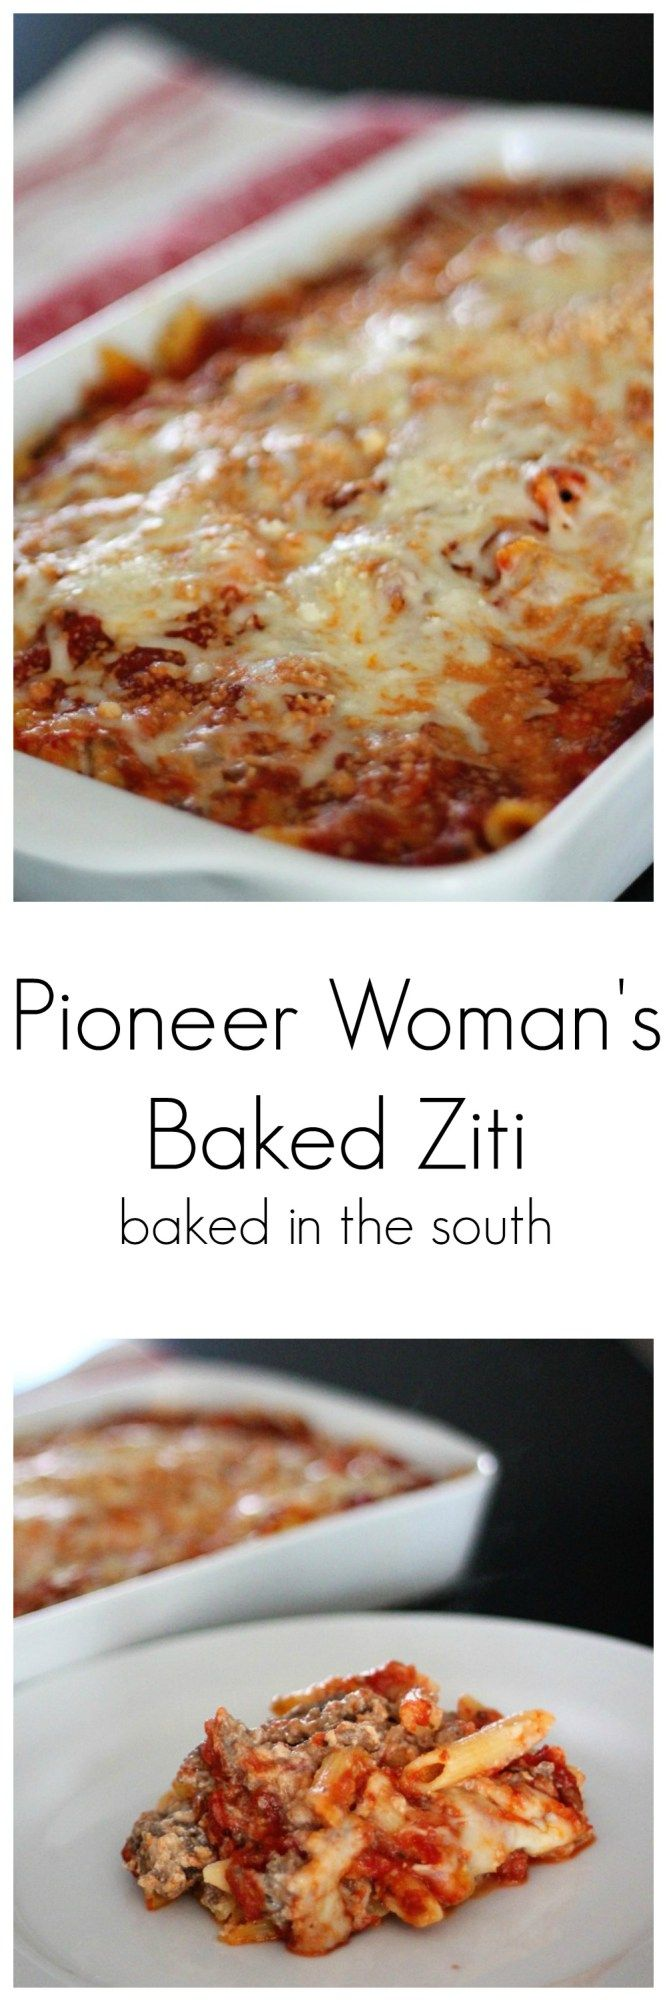 ... lasagna southern kitchens the pioneer woman baked ziti pioneer woman